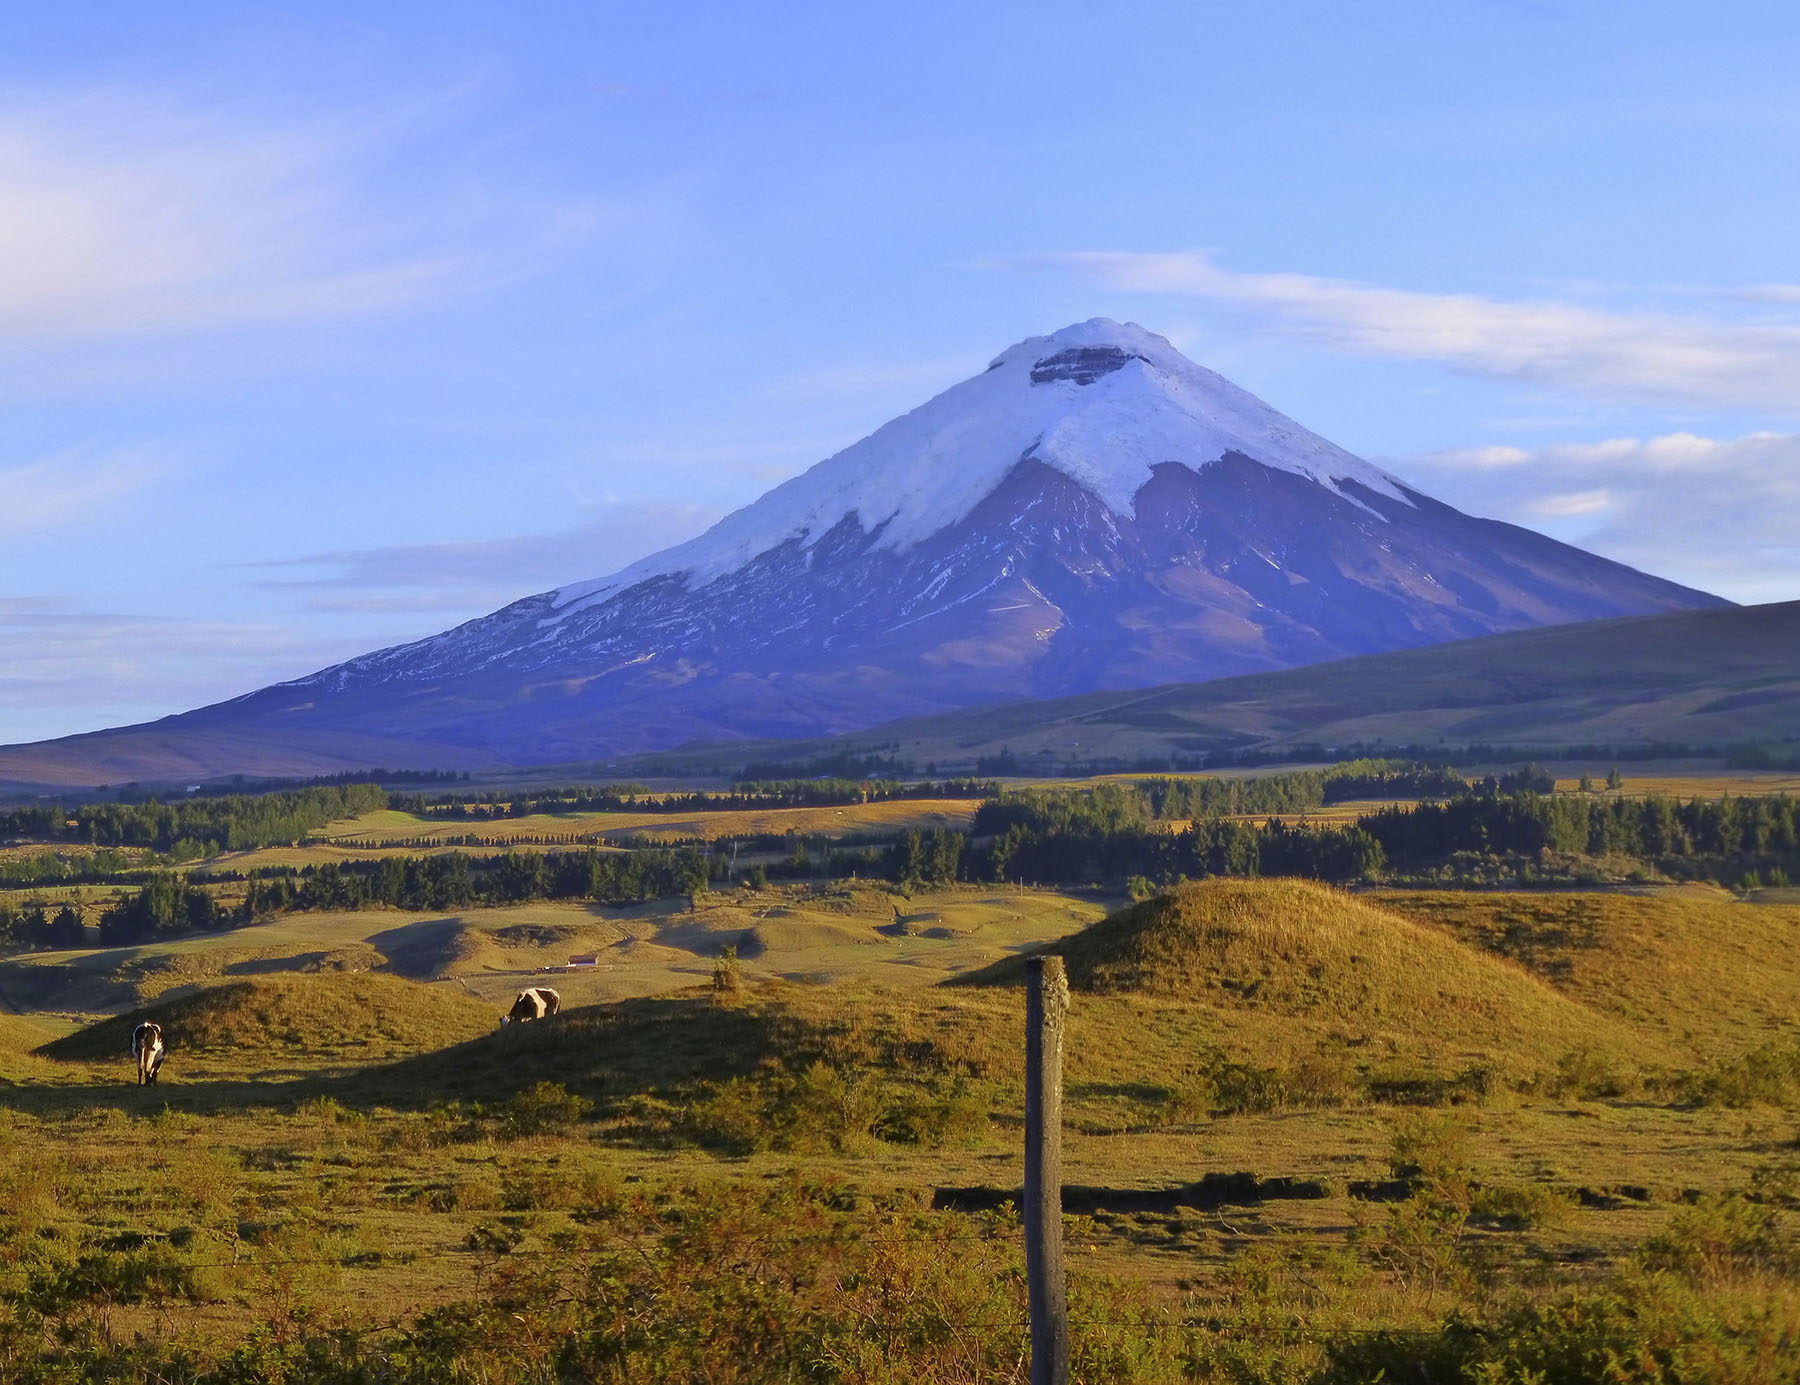 Mount Cotopaxi. One of the highest active volcanoes in the world.